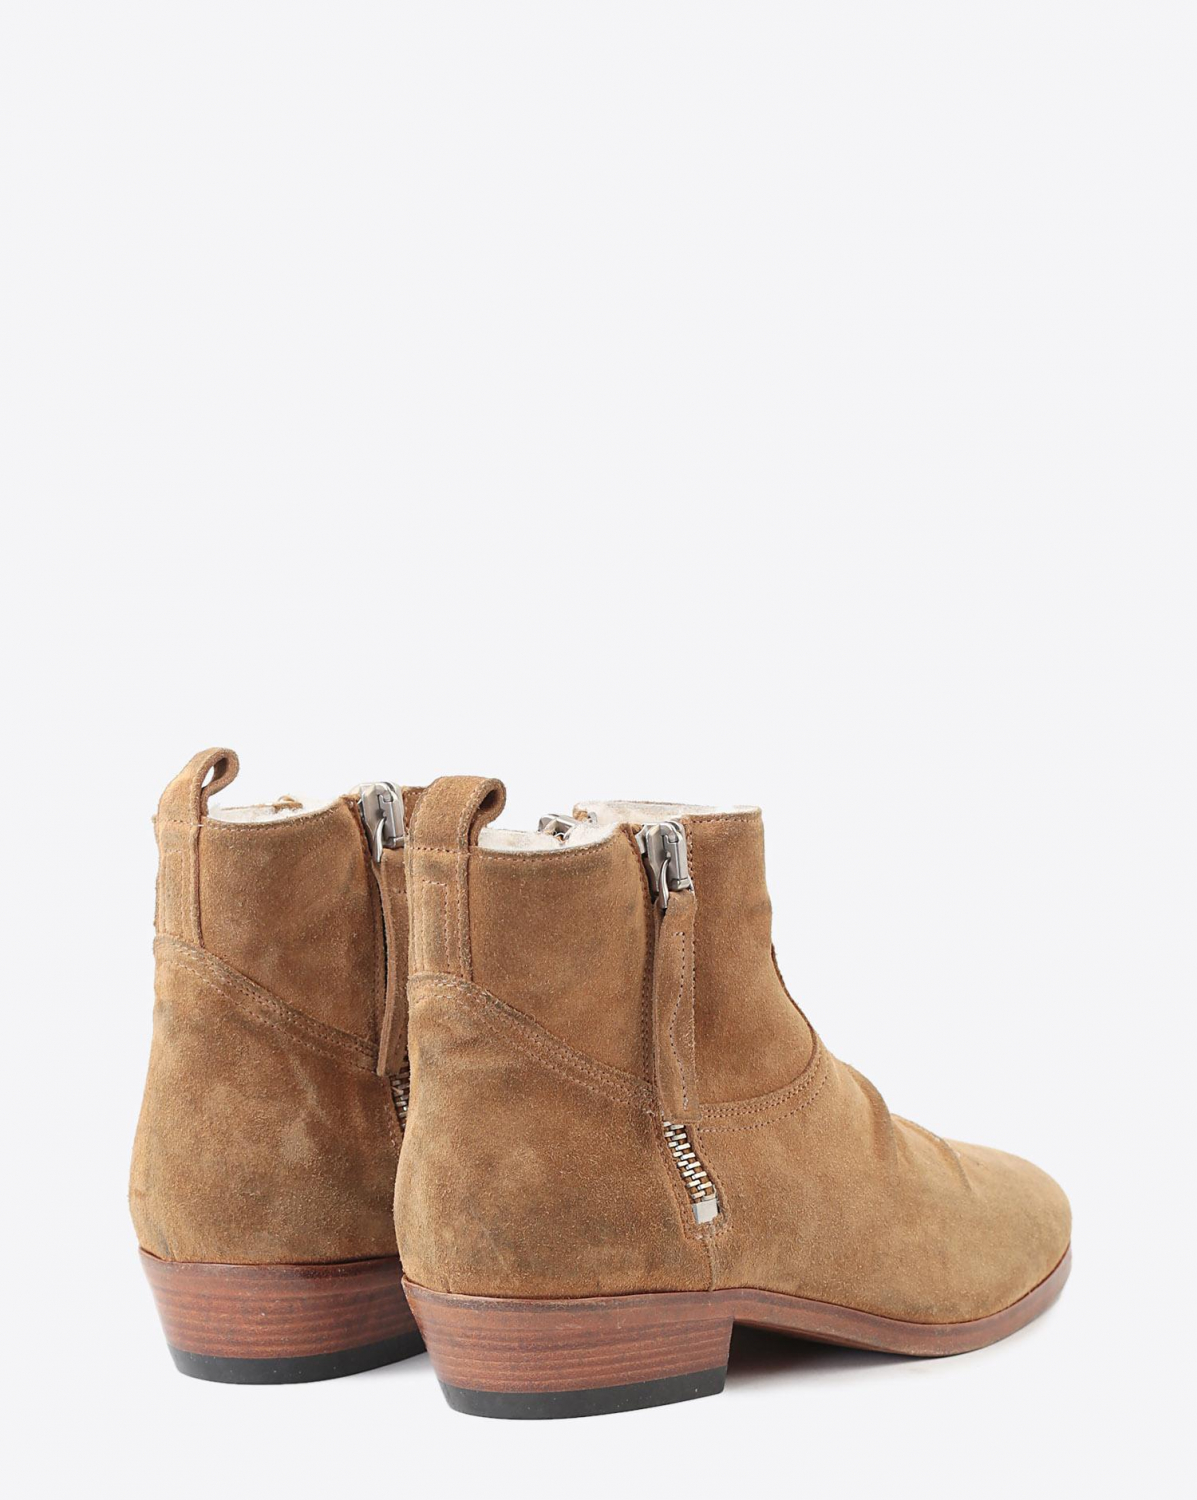 Golden Goose Woman Chaussures Pré-Collection Boots Viand - Tawny Suede - Shearling